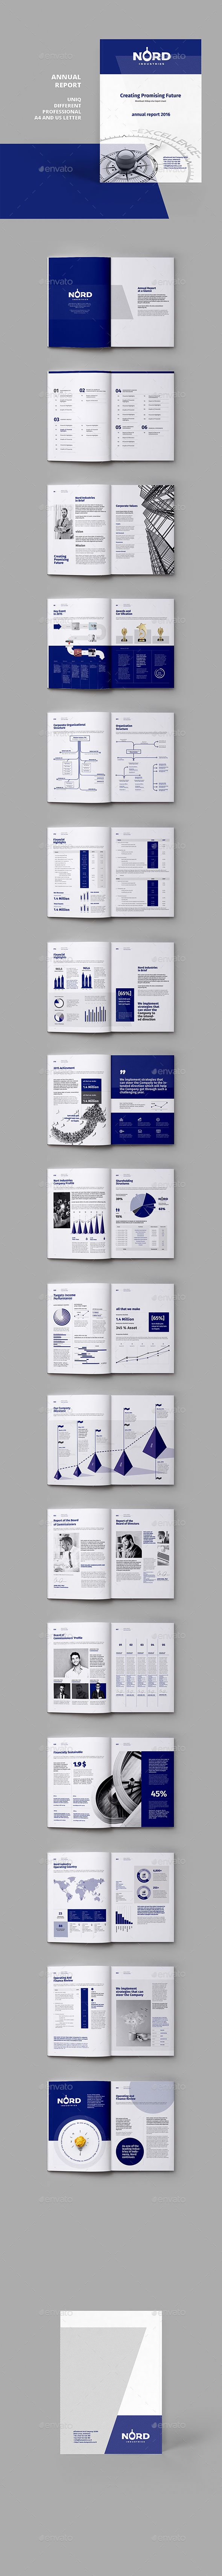 Report — InDesign INDD #indesign #creative • Download ➝ https://graphicriver.net/item/report/19170290?ref=pxcr